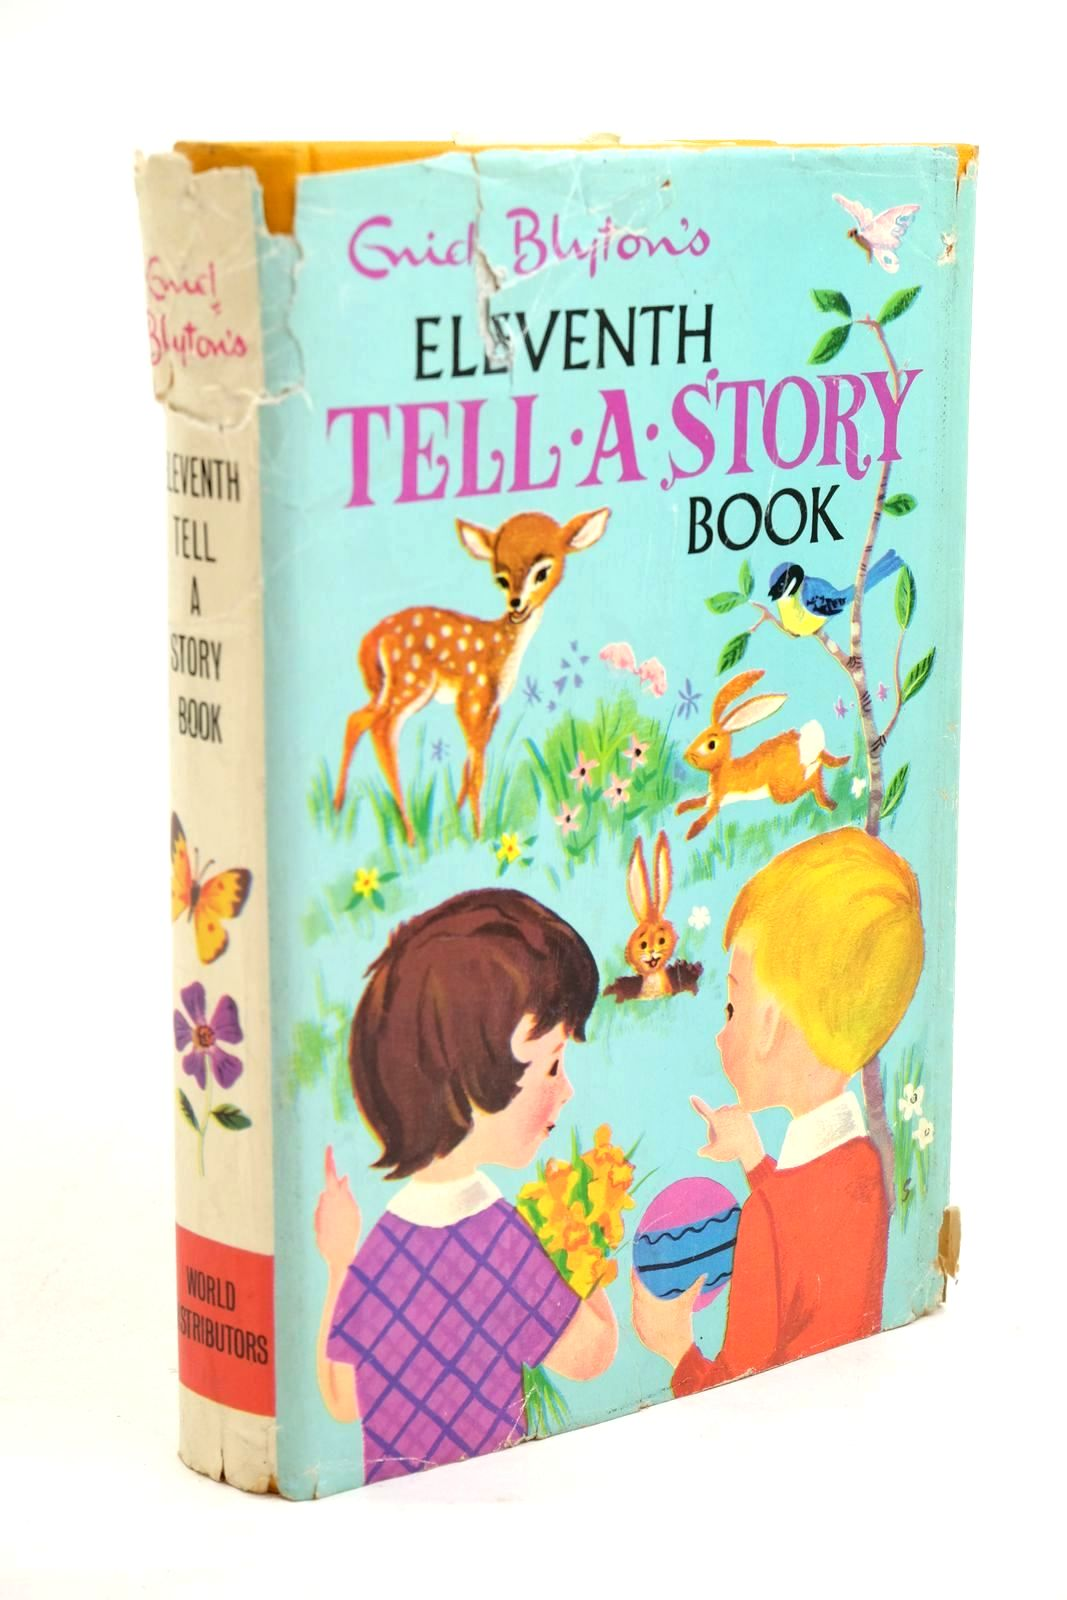 Photo of ENID BLYTON'S ELEVENTH TELL-A-STORY BOOK written by Blyton, Enid published by World Distributors Ltd. (STOCK CODE: 1321093)  for sale by Stella & Rose's Books